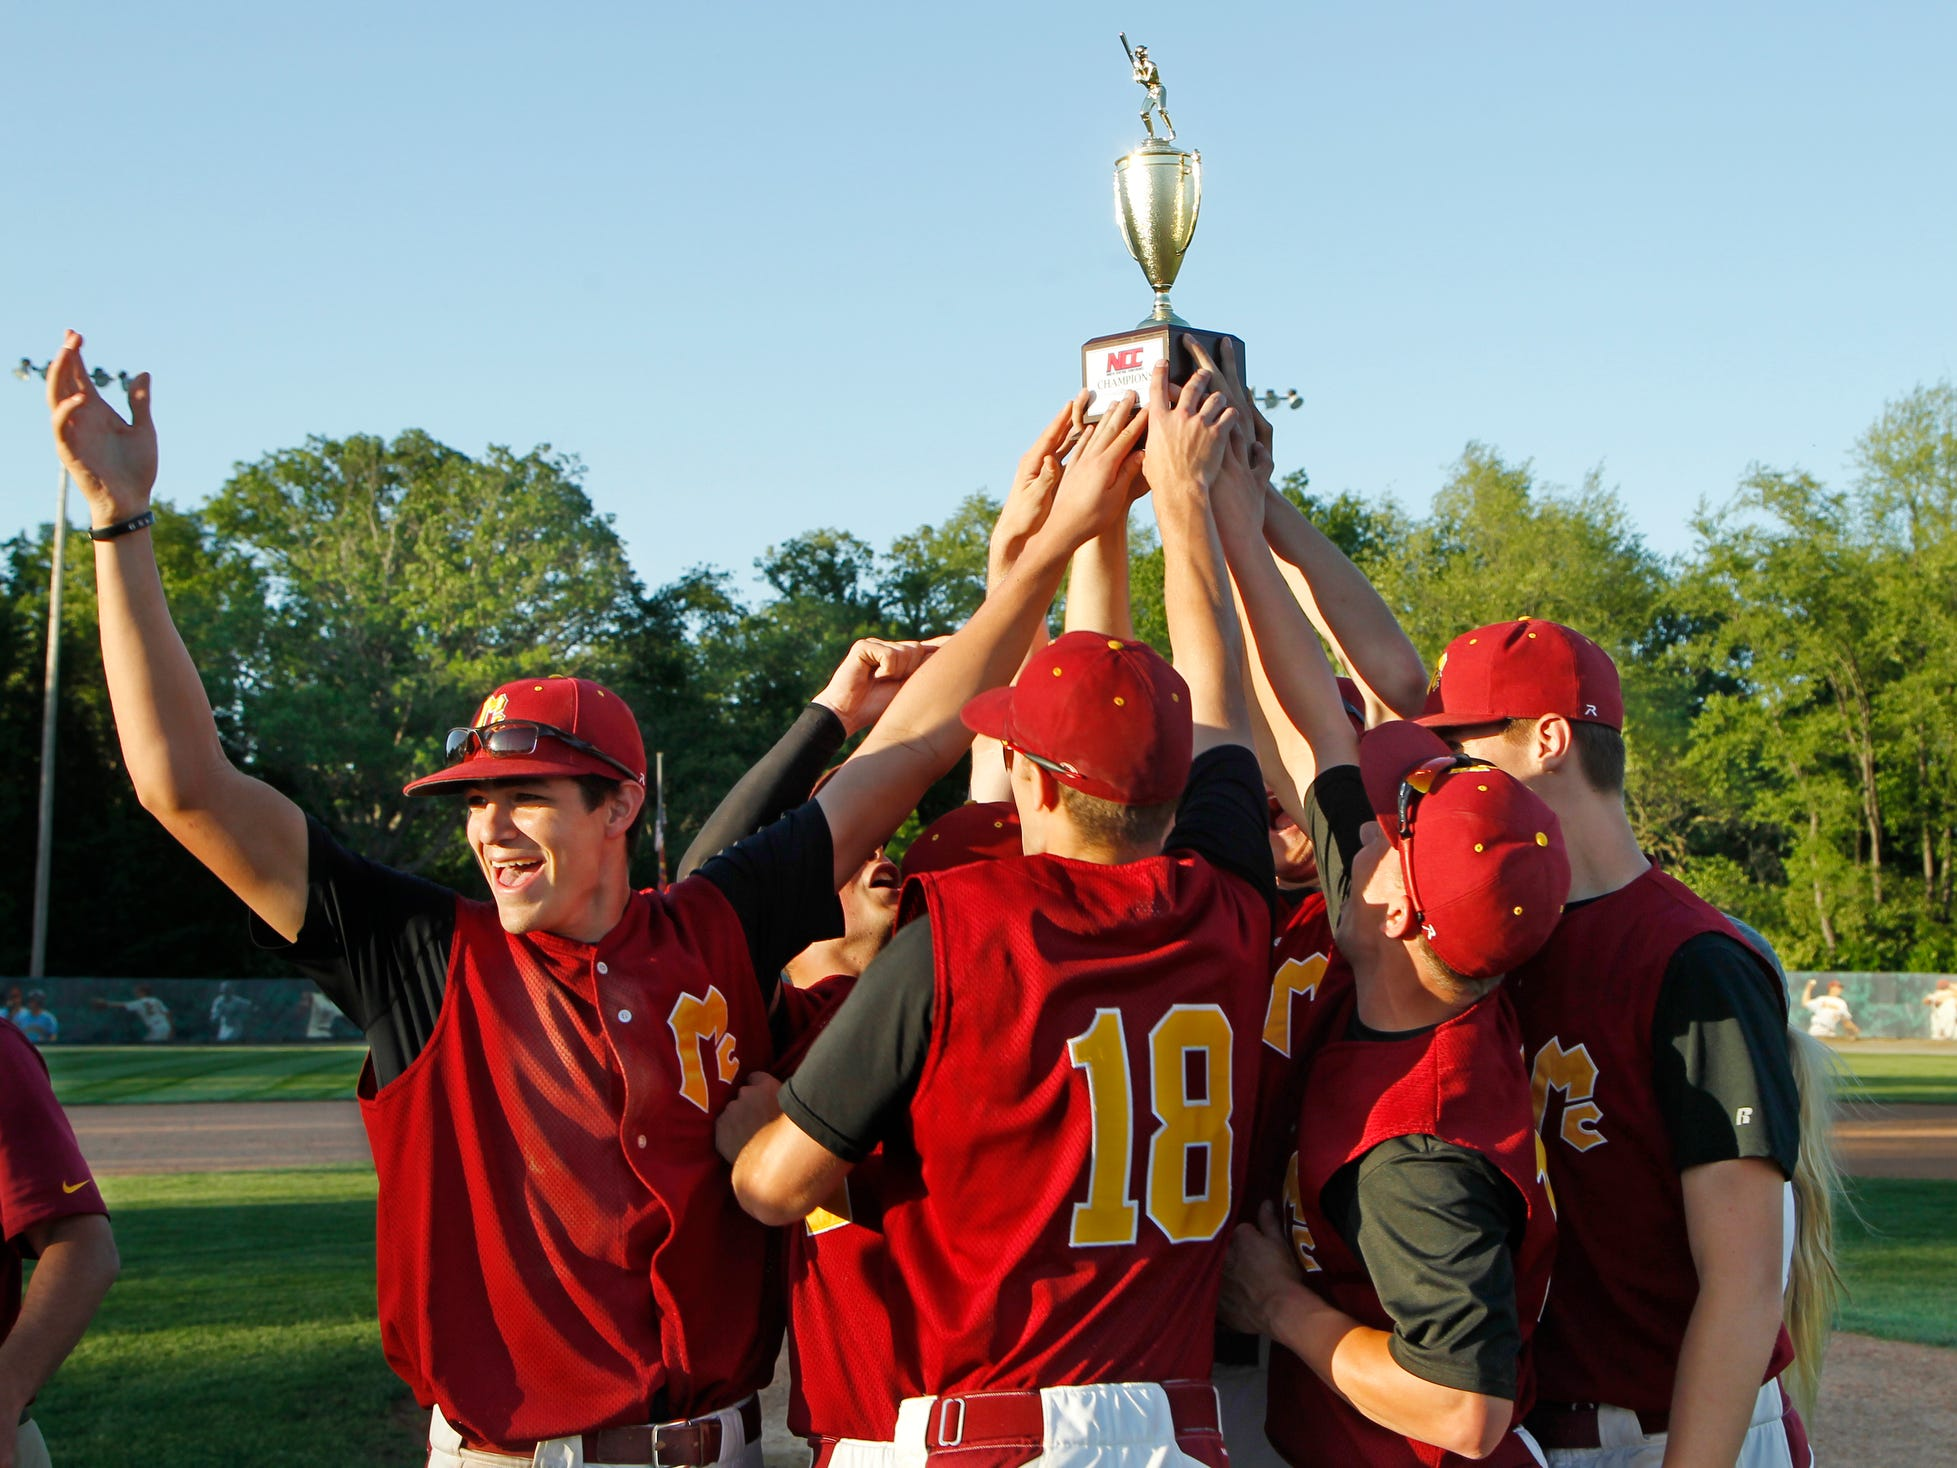 McCutcheon players celebrate after defeating rival Harrison 10-1 in the North Central Conference baseball championship Monday at McCutcheon High School. This is the first year in the NCC for both teams.